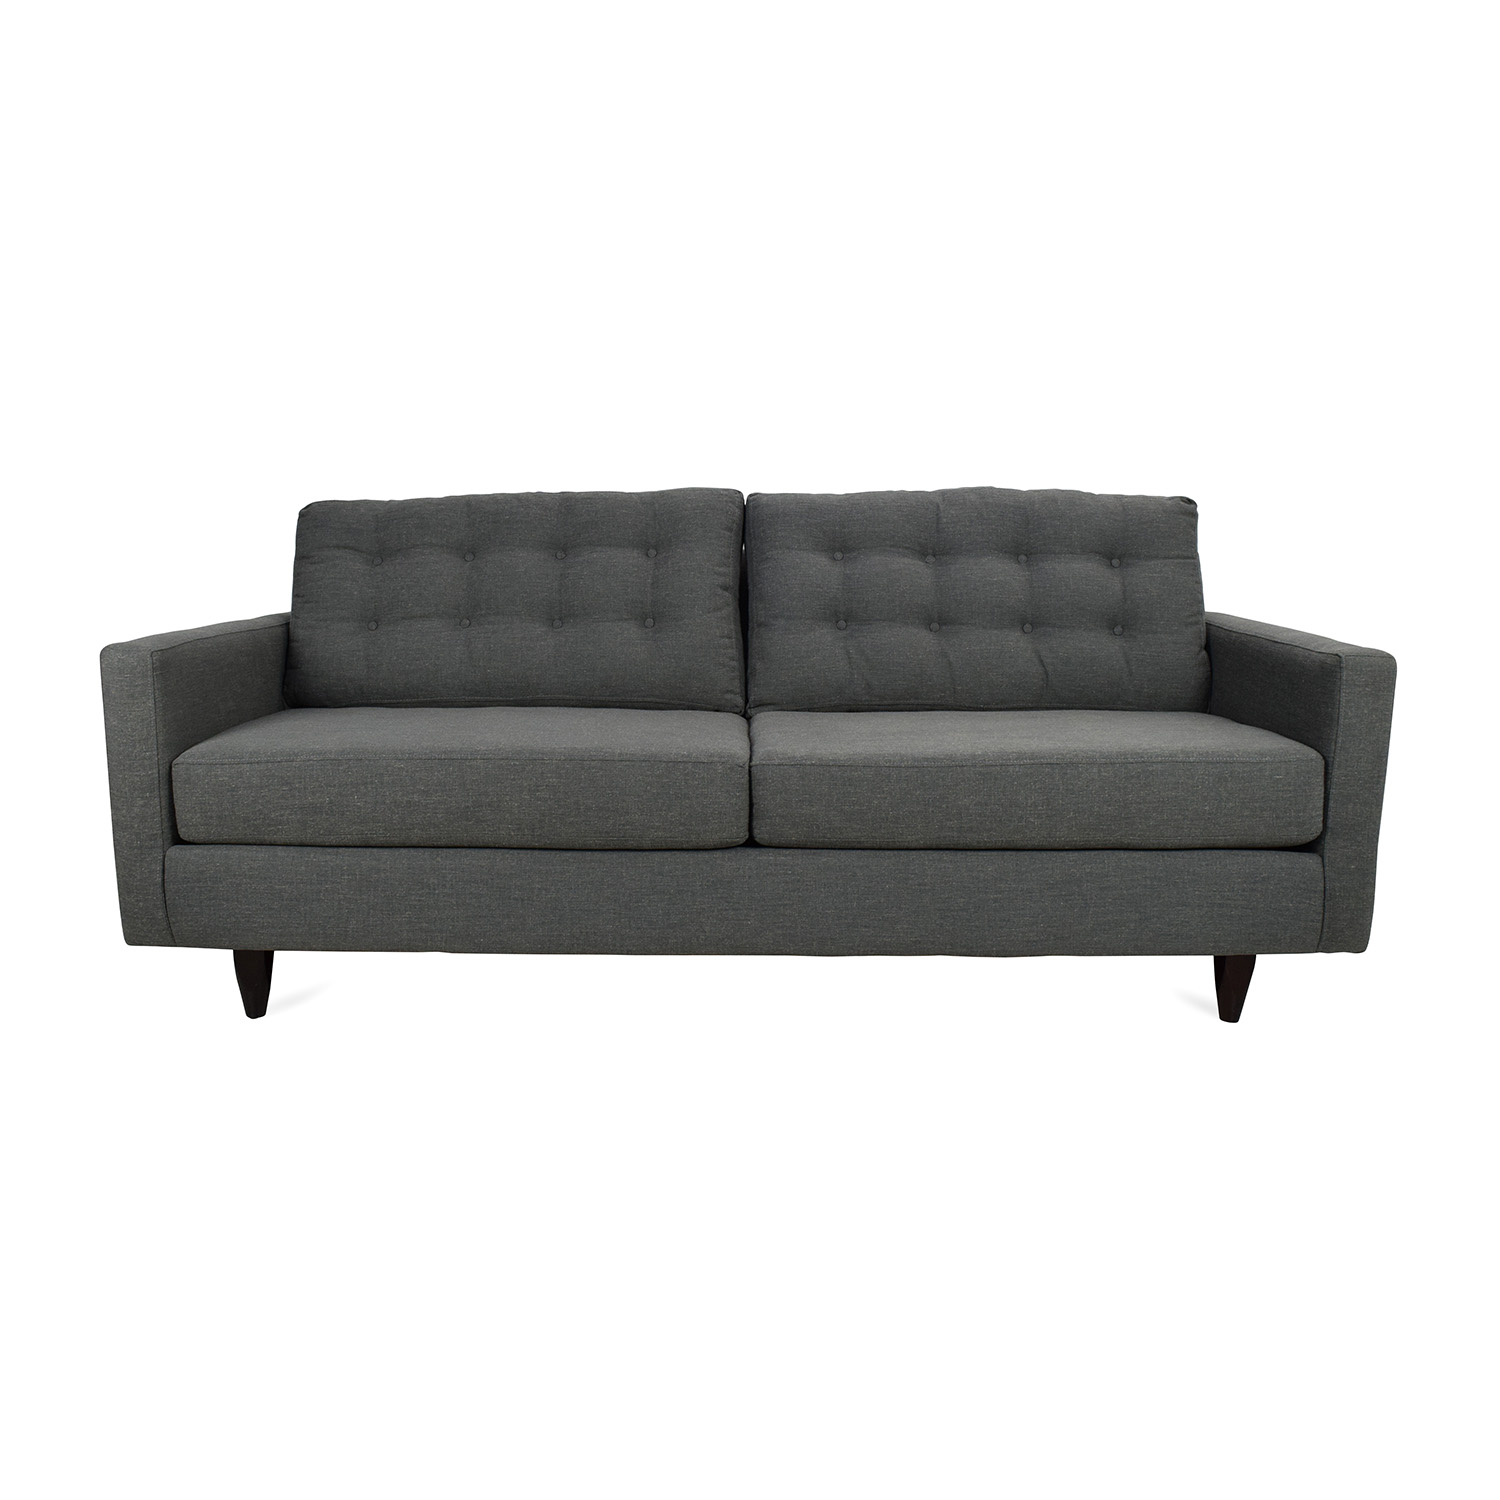 Wayfair Omero Sofa: Wayfair Wayfair Harper Midcentury Sofa / Sofas